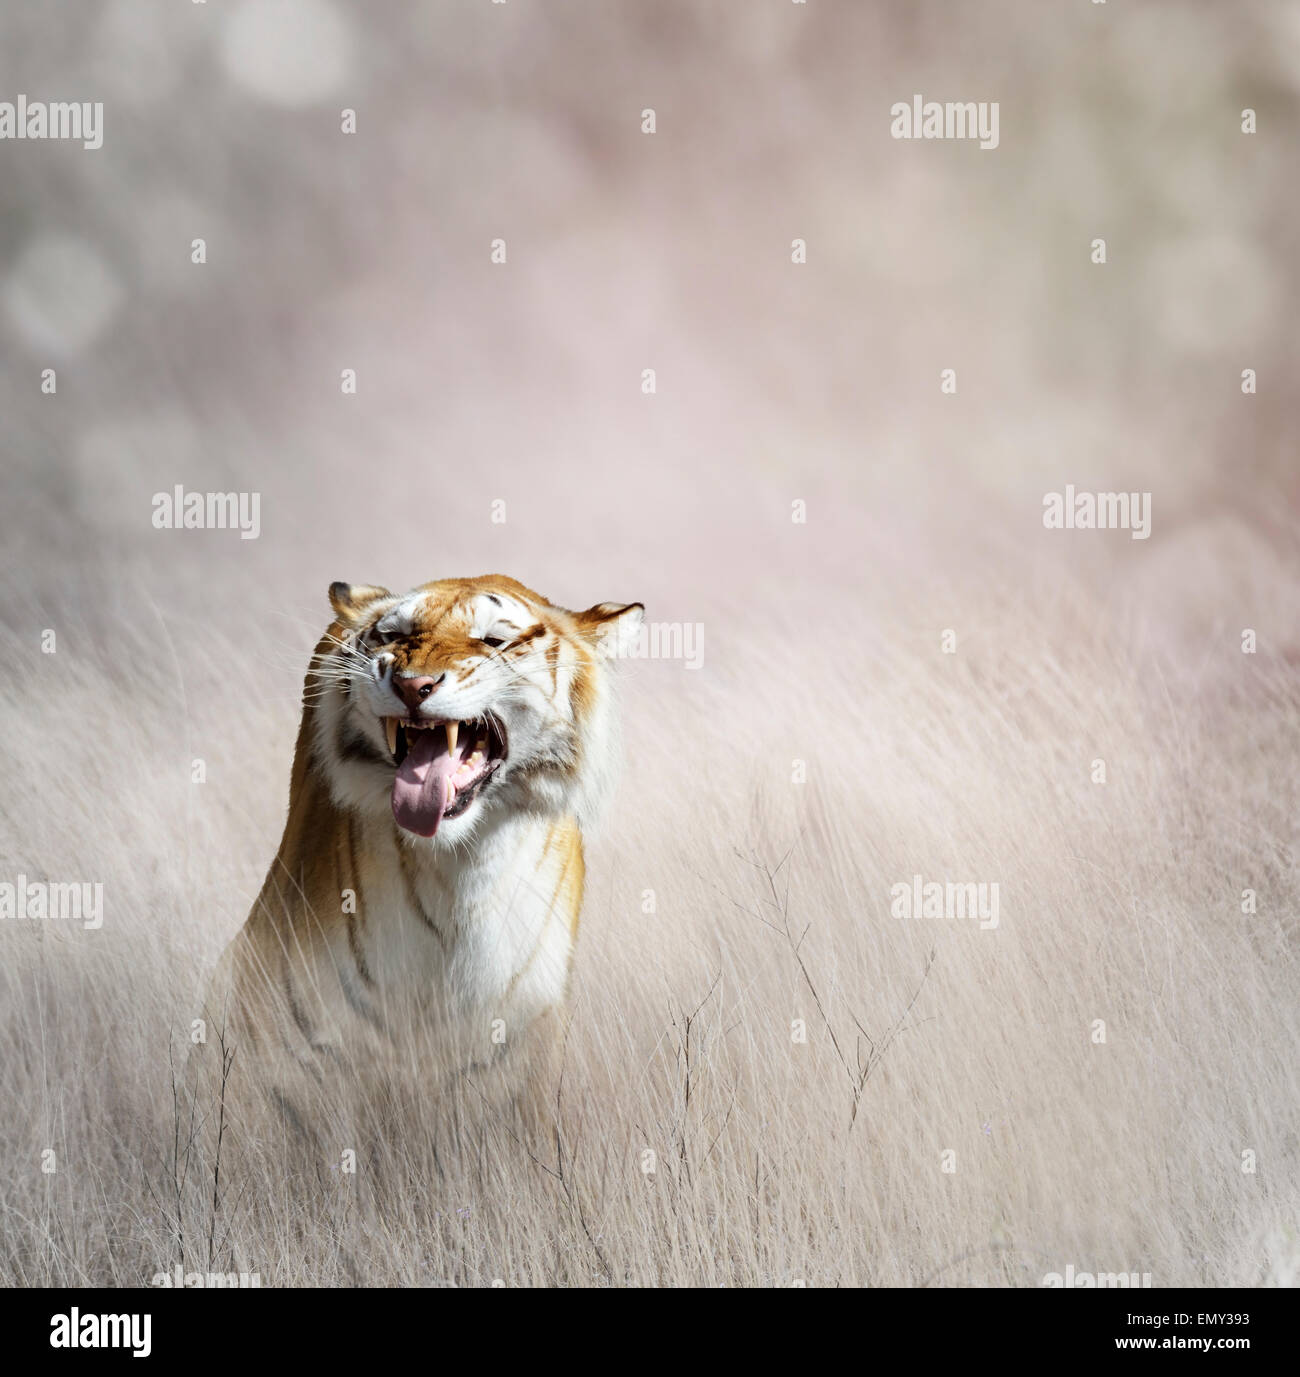 Tiger  In The Tall Grass - Stock Image